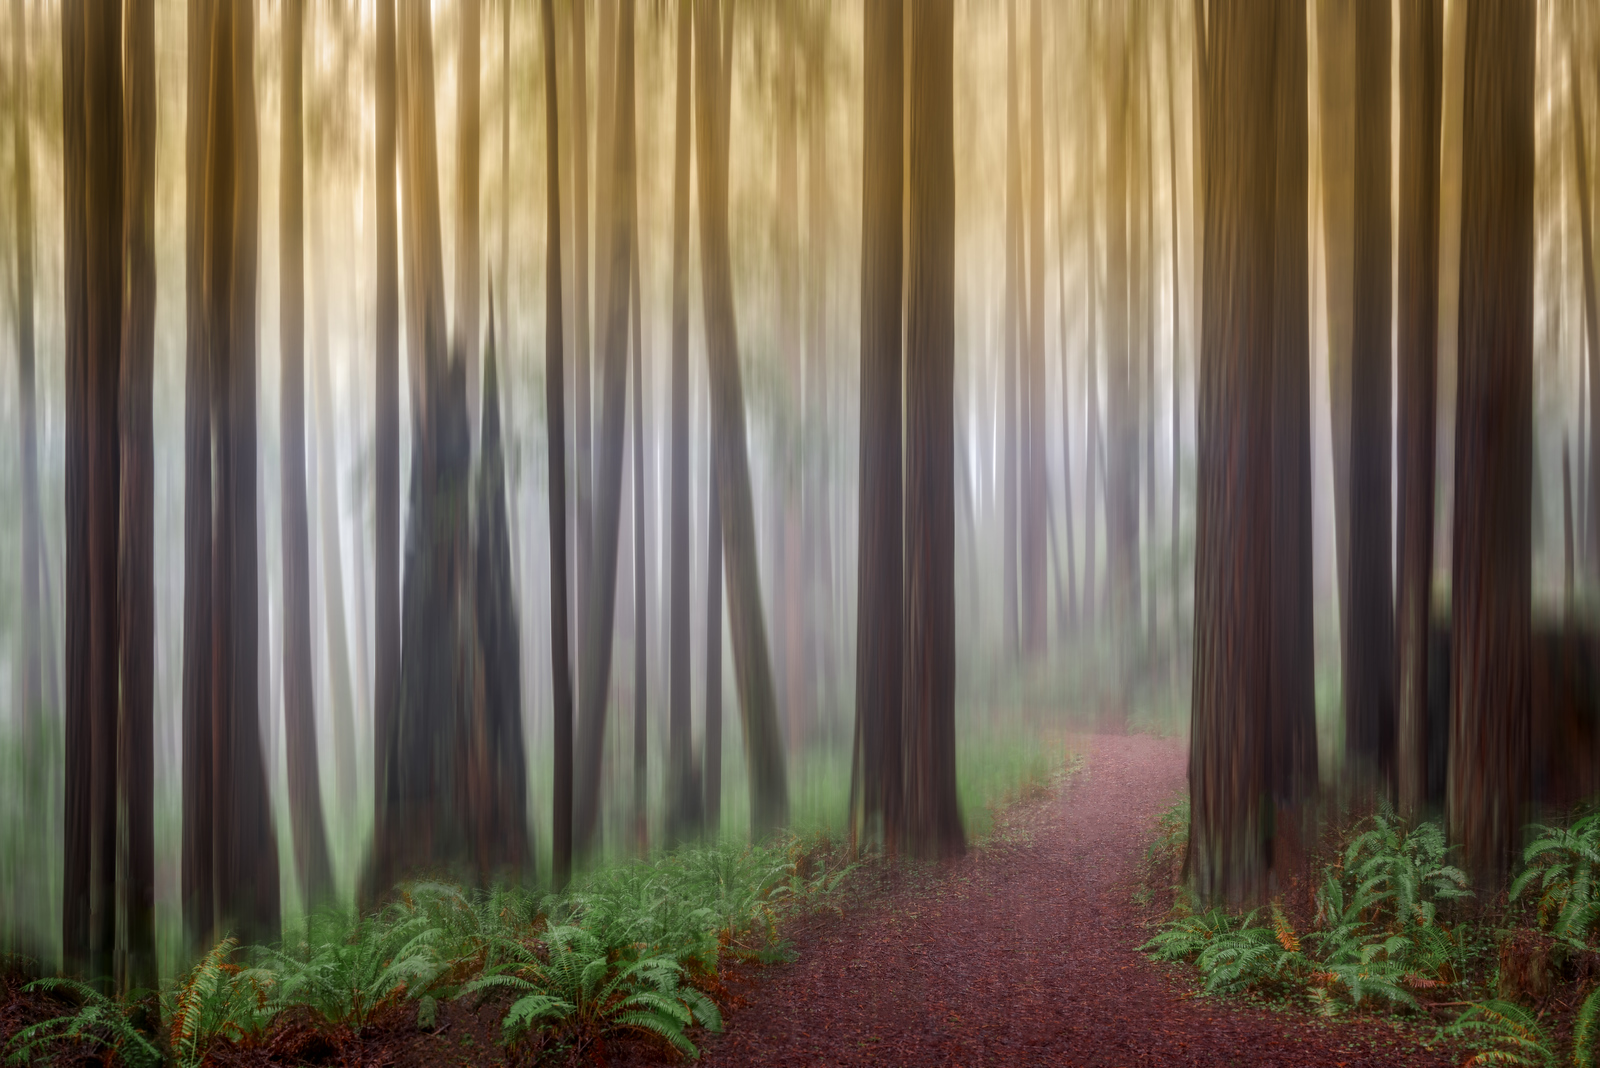 Mystic Forest, Study #2, Sea Ranch, California